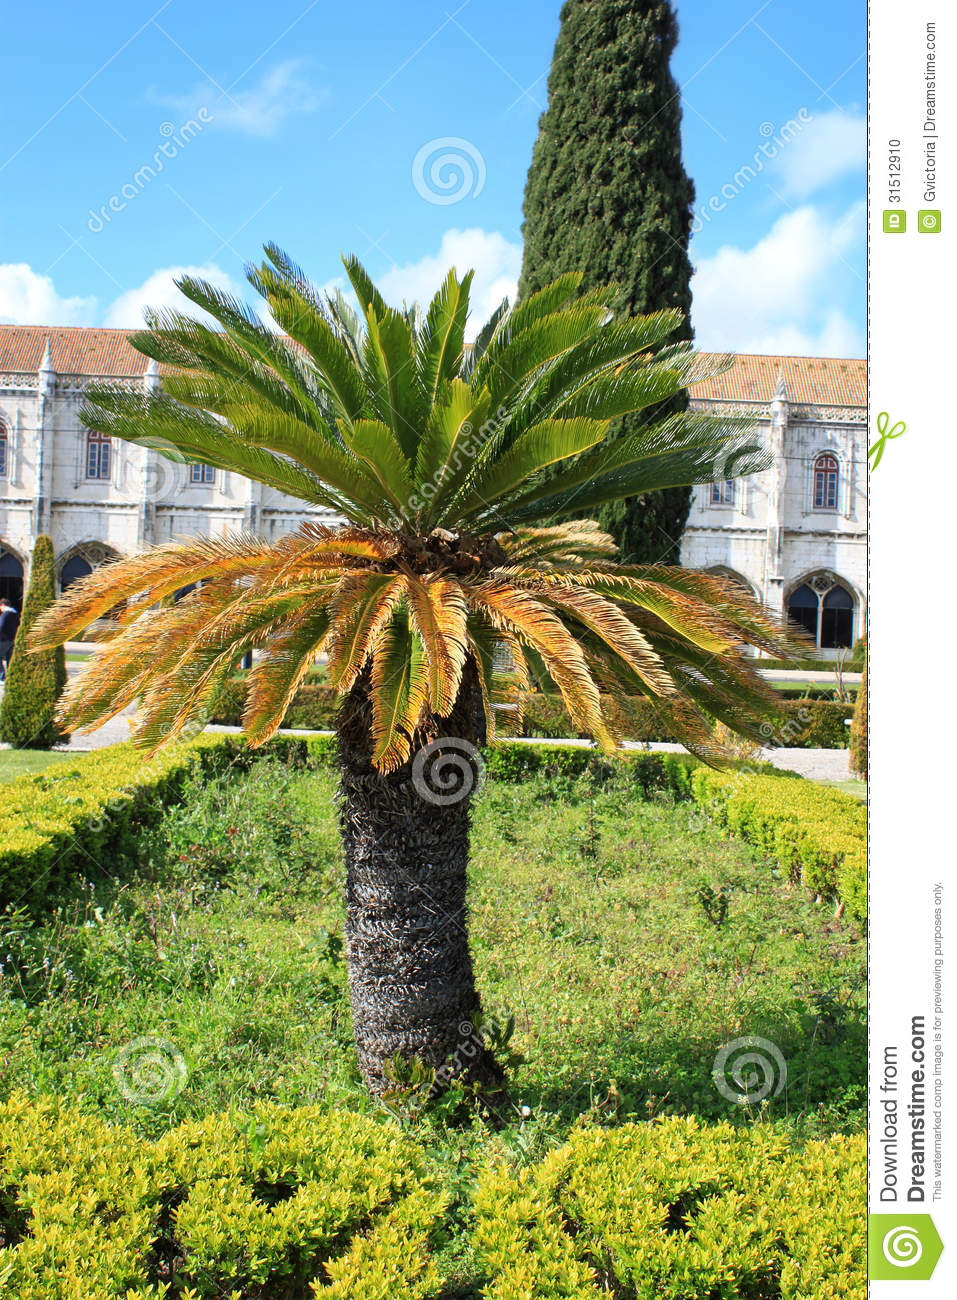 Short palm tree in the middle of the city in Belem, Portugal.